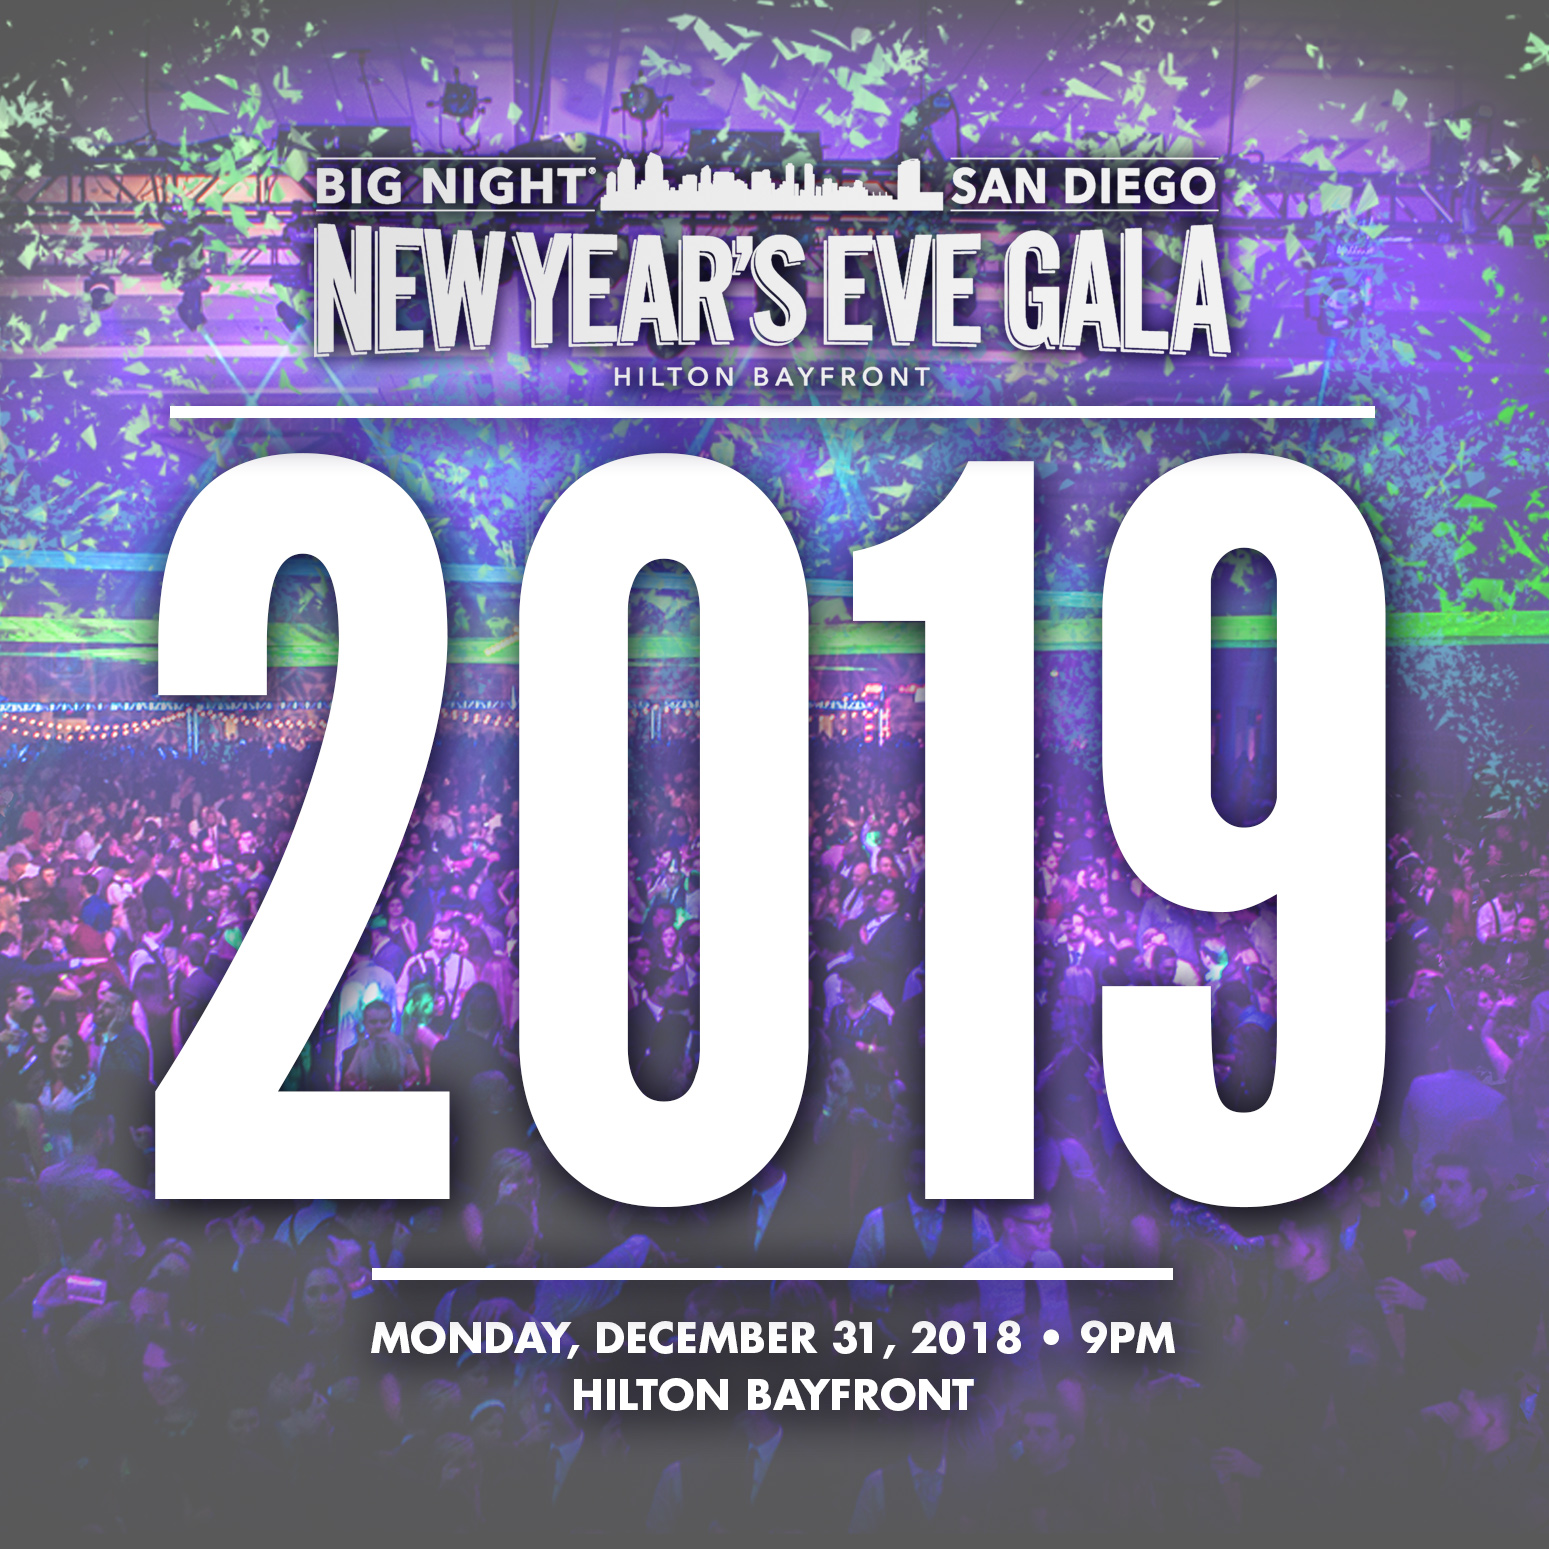 Save on passes & Enter to win tickets to the all-inclusive Big Night San Diego NYE Celebration!